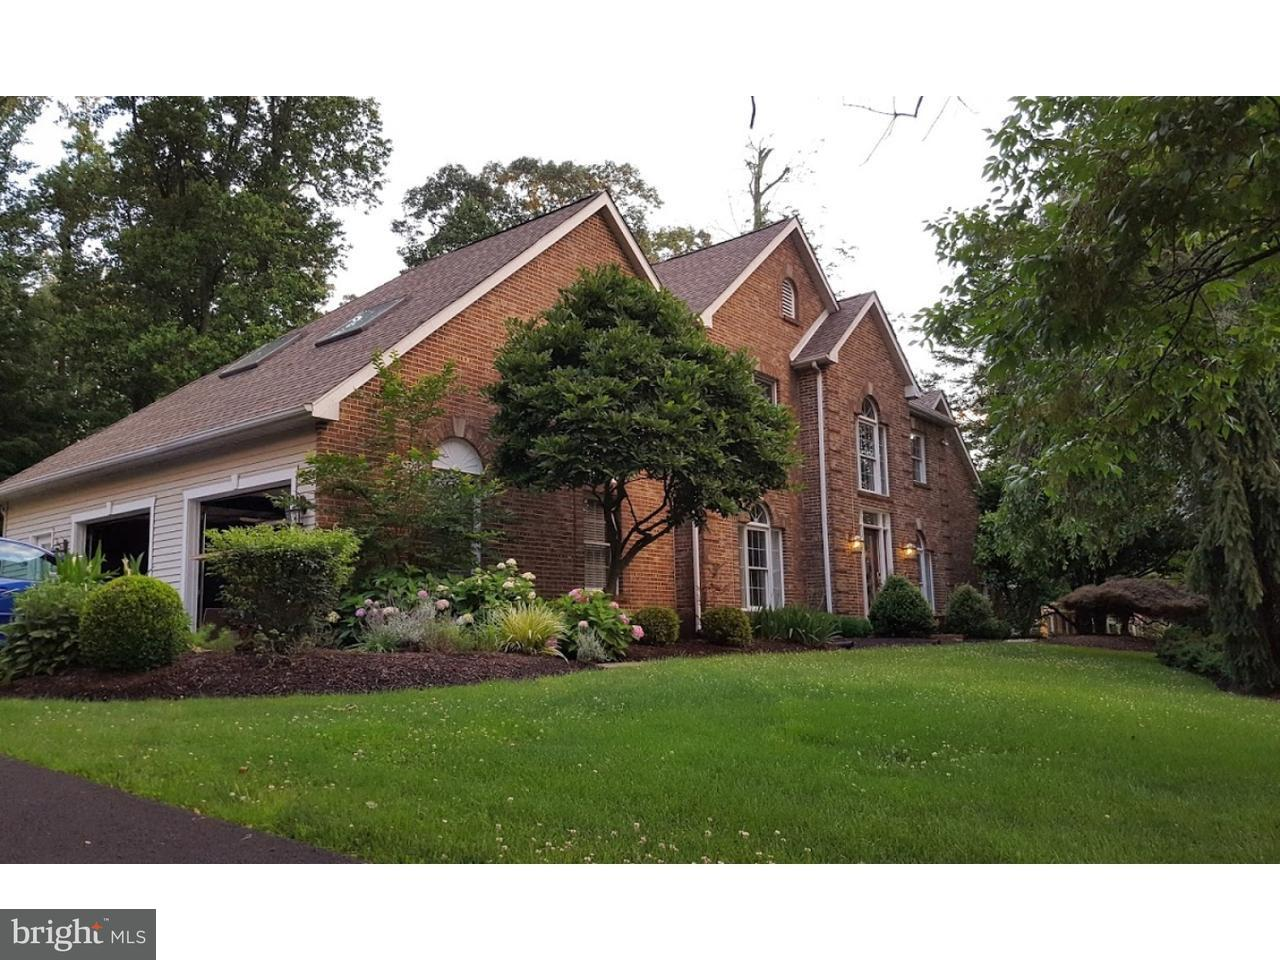 Single Family Home for Sale at 630 PULINSKI Road Warminster, Pennsylvania 18974 United States